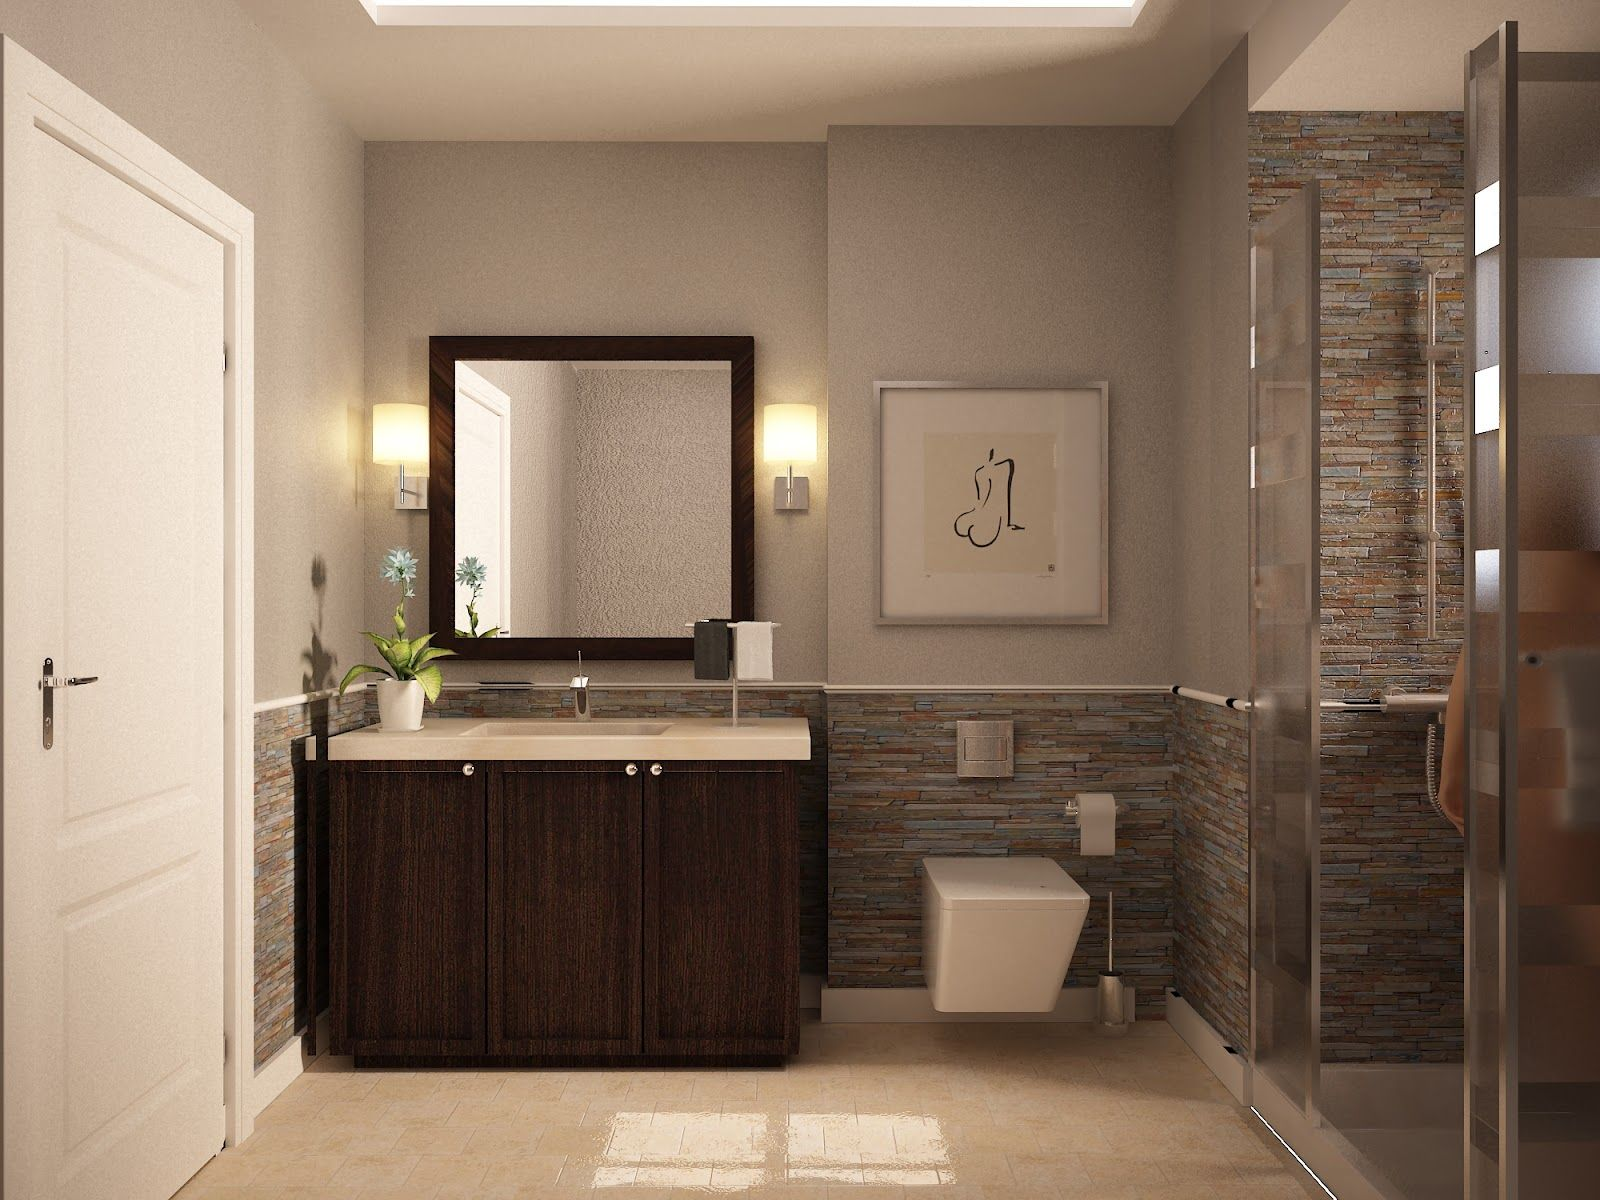 Colorful bathroom decoration - Awesome Small Bathroom Design Ideas Color Schemes Featuring Silver Modern Bathroom Themed And Gray Finishing Wall Color Bathroom Integrated With Natural